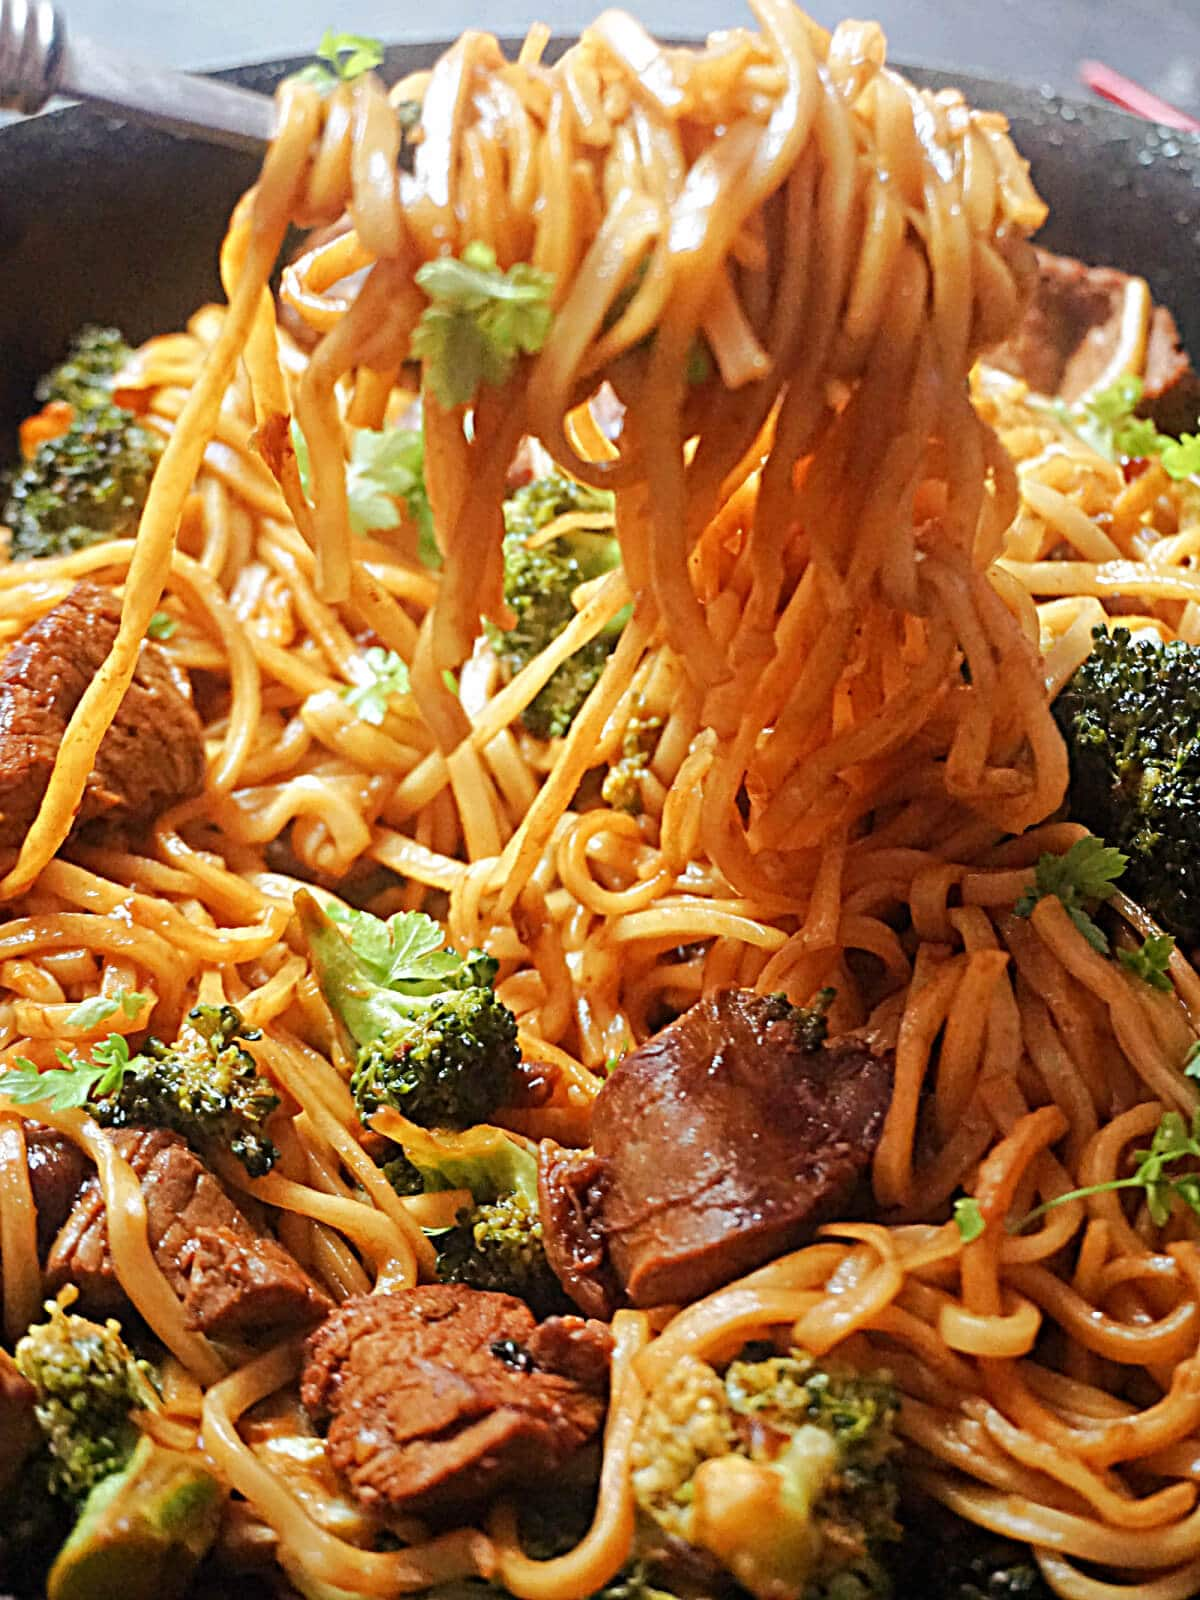 A forkful of noodles off a wok with noodles beef and broccoli stir fry